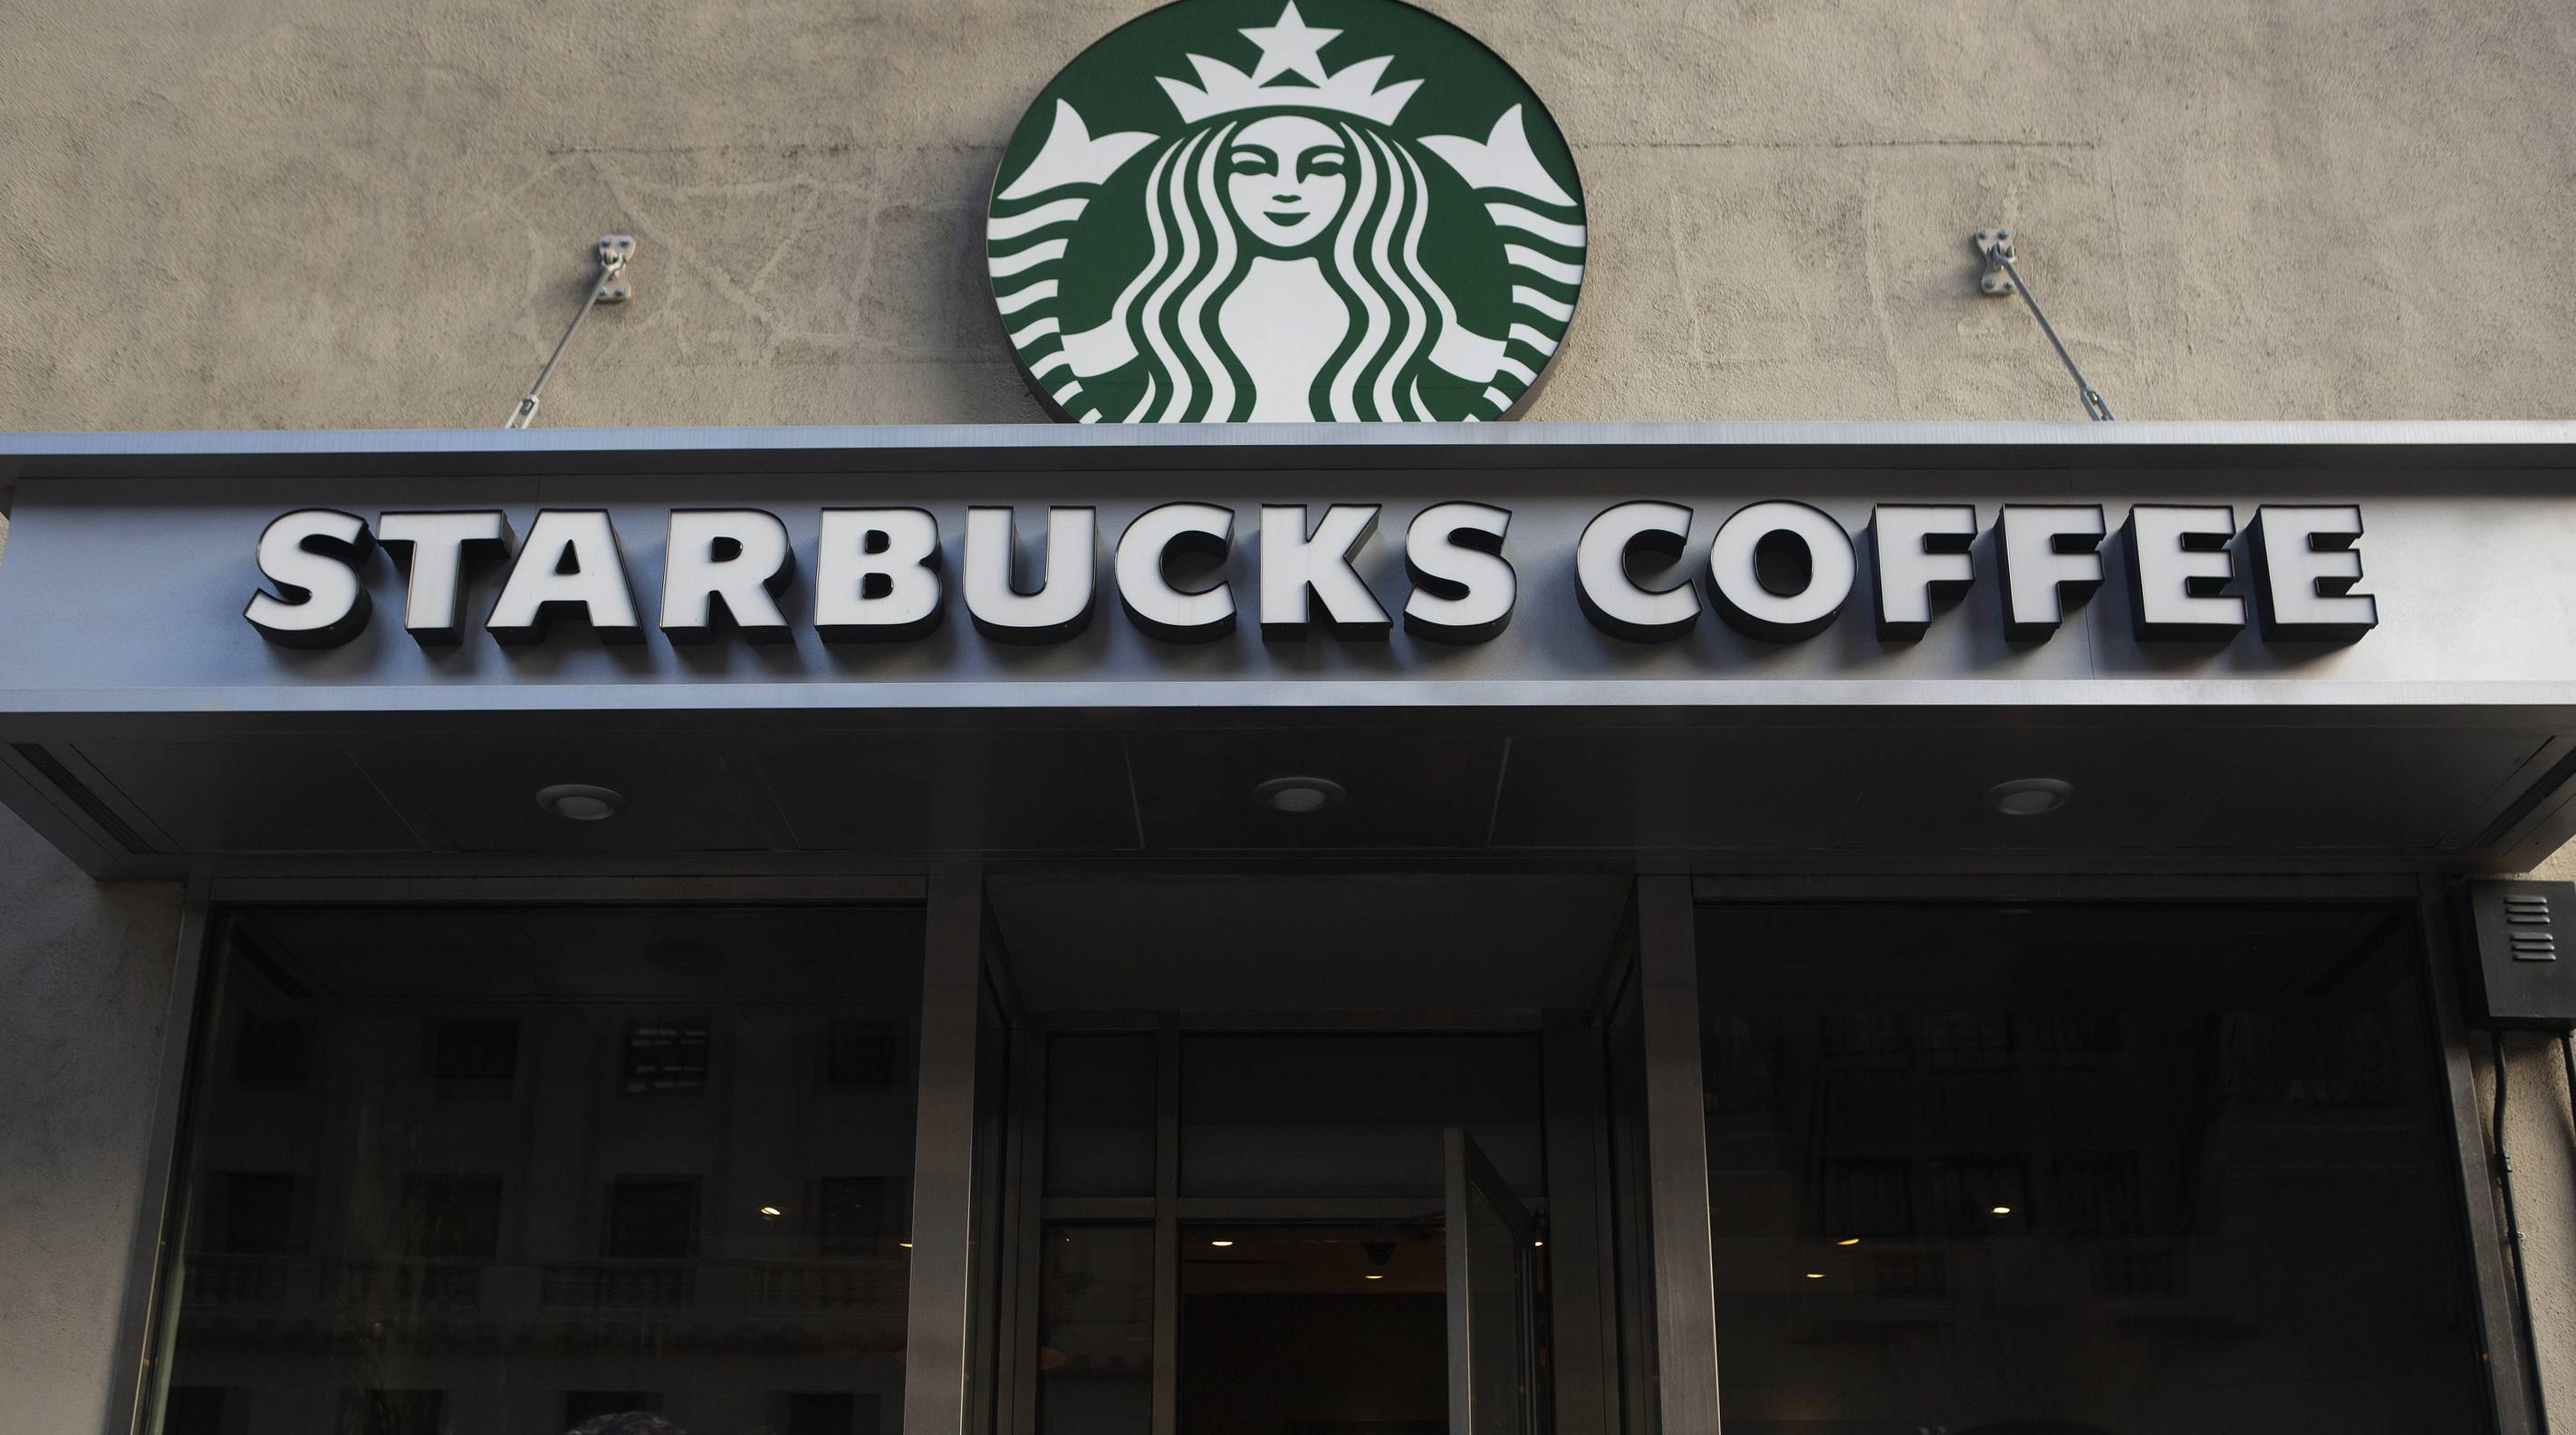 As Starbucks grapples with slowing foot traffic and a glut of competition, it's hoping to snag new customers by meeting them where they are — literally.